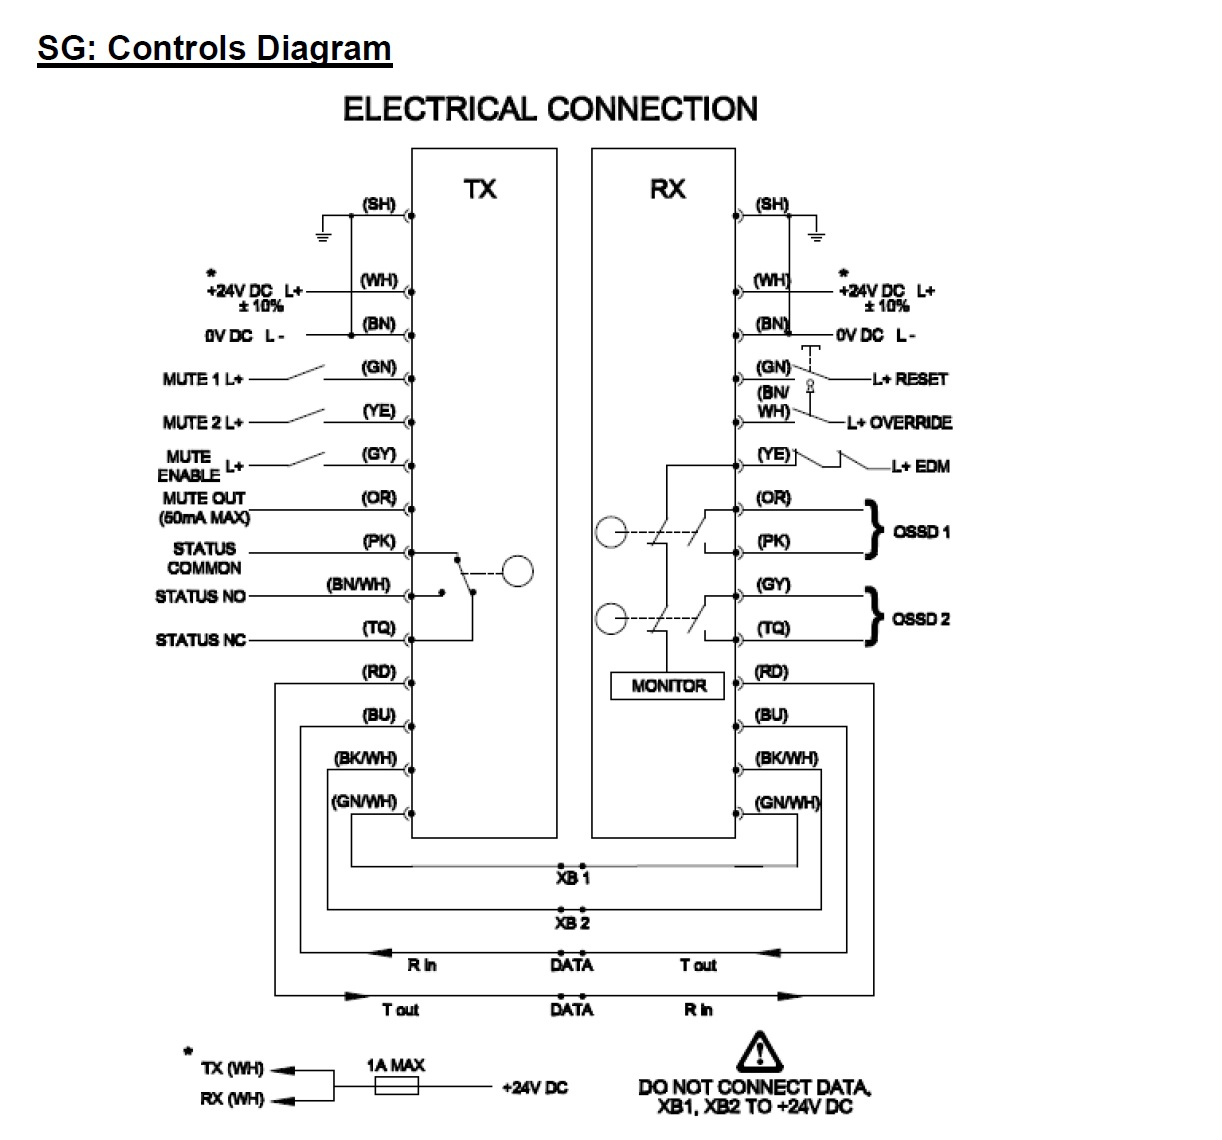 omron my4n 24vdc relay wiring diagram lamp safety pilz